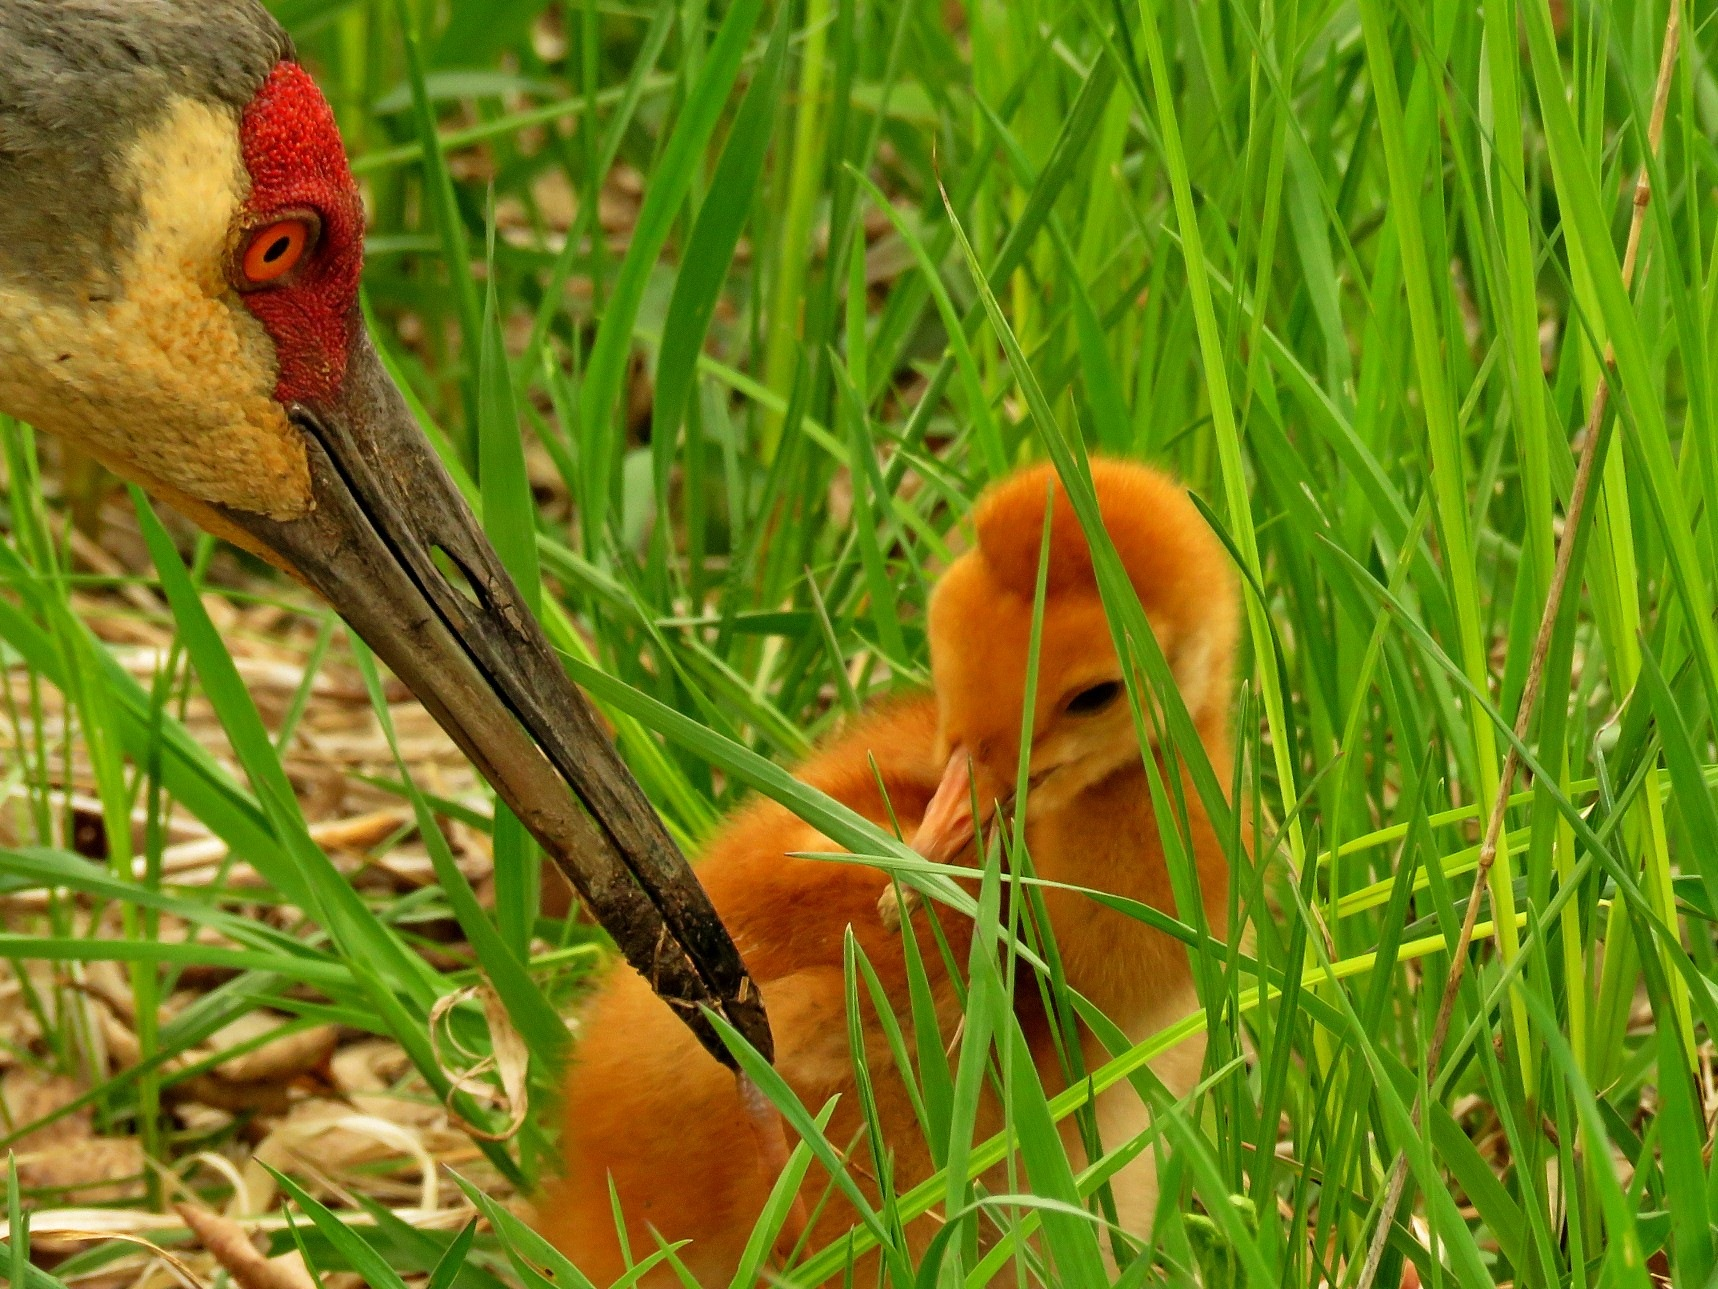 Adult Sandhill Crane with worm for baby! by Wayne T. 'tom' Helfrich